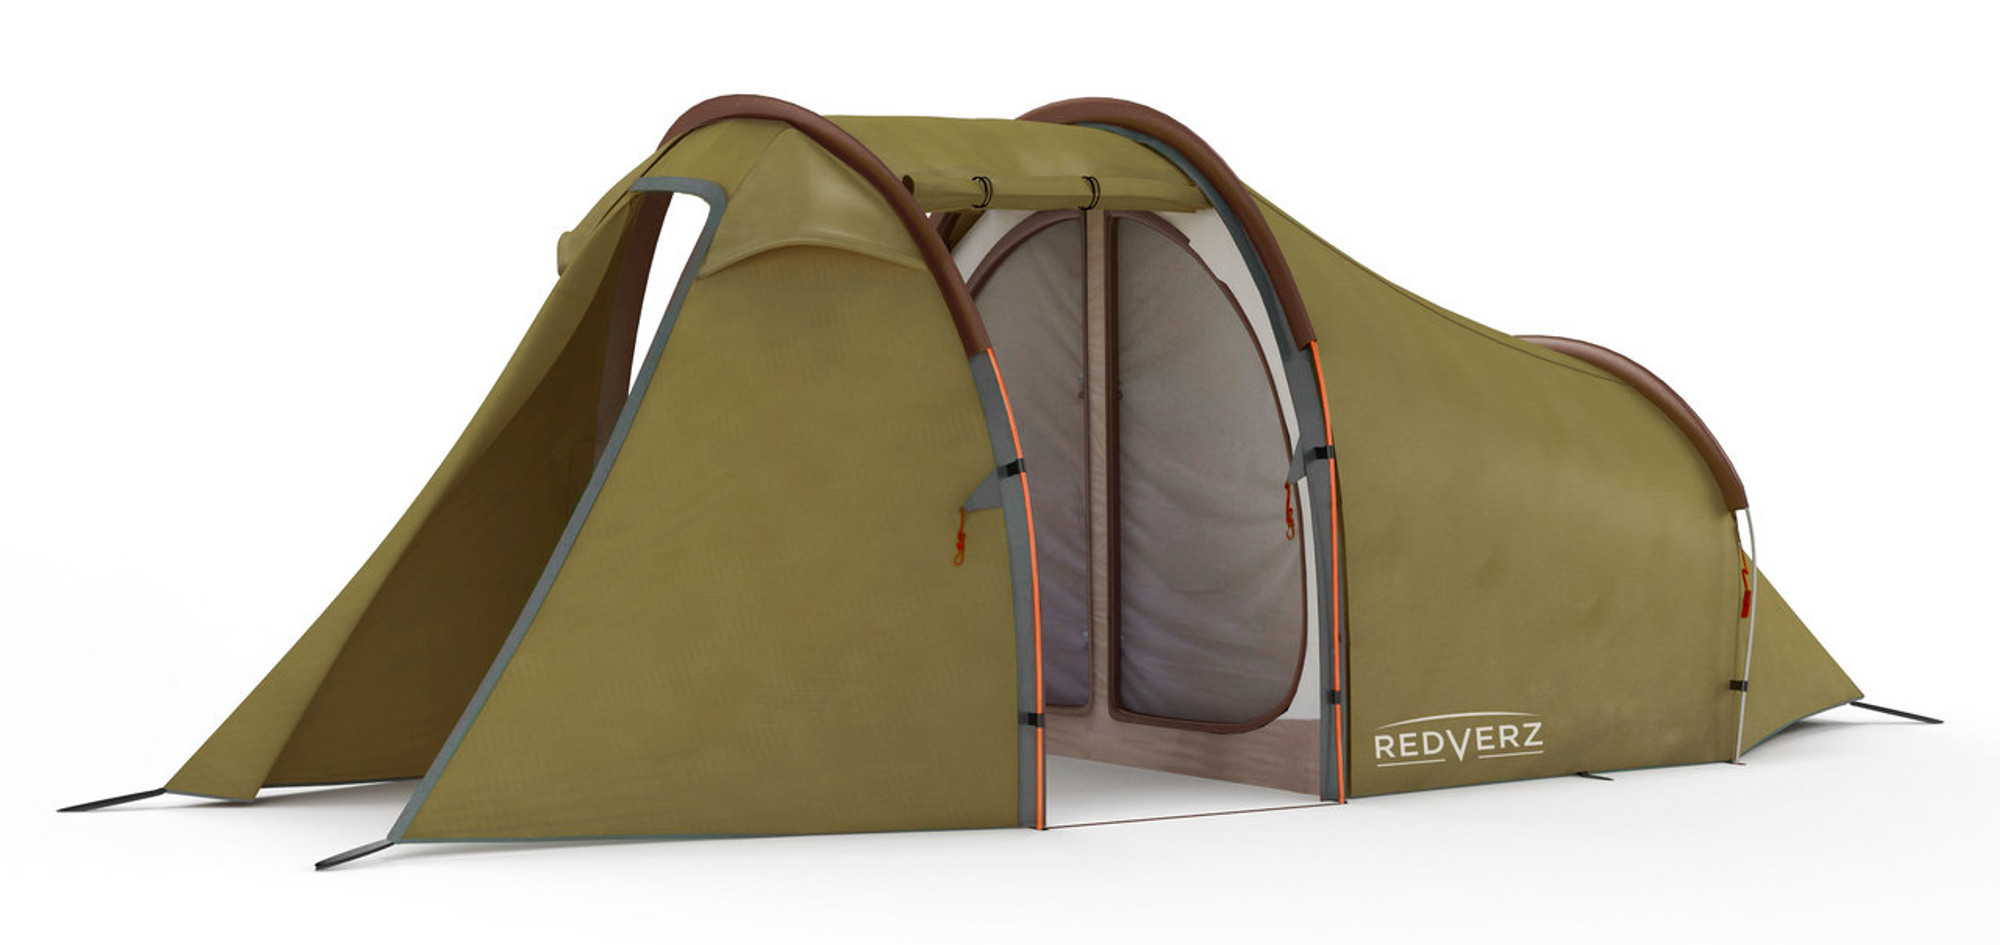 ... Redverz Motorcycle Tent - Atacama Expedition Tent view with doors open shows mesh screen ...  sc 1 st  Redverz Gear & Redverz Gear - Atacama Expedition Motorcycle Tent